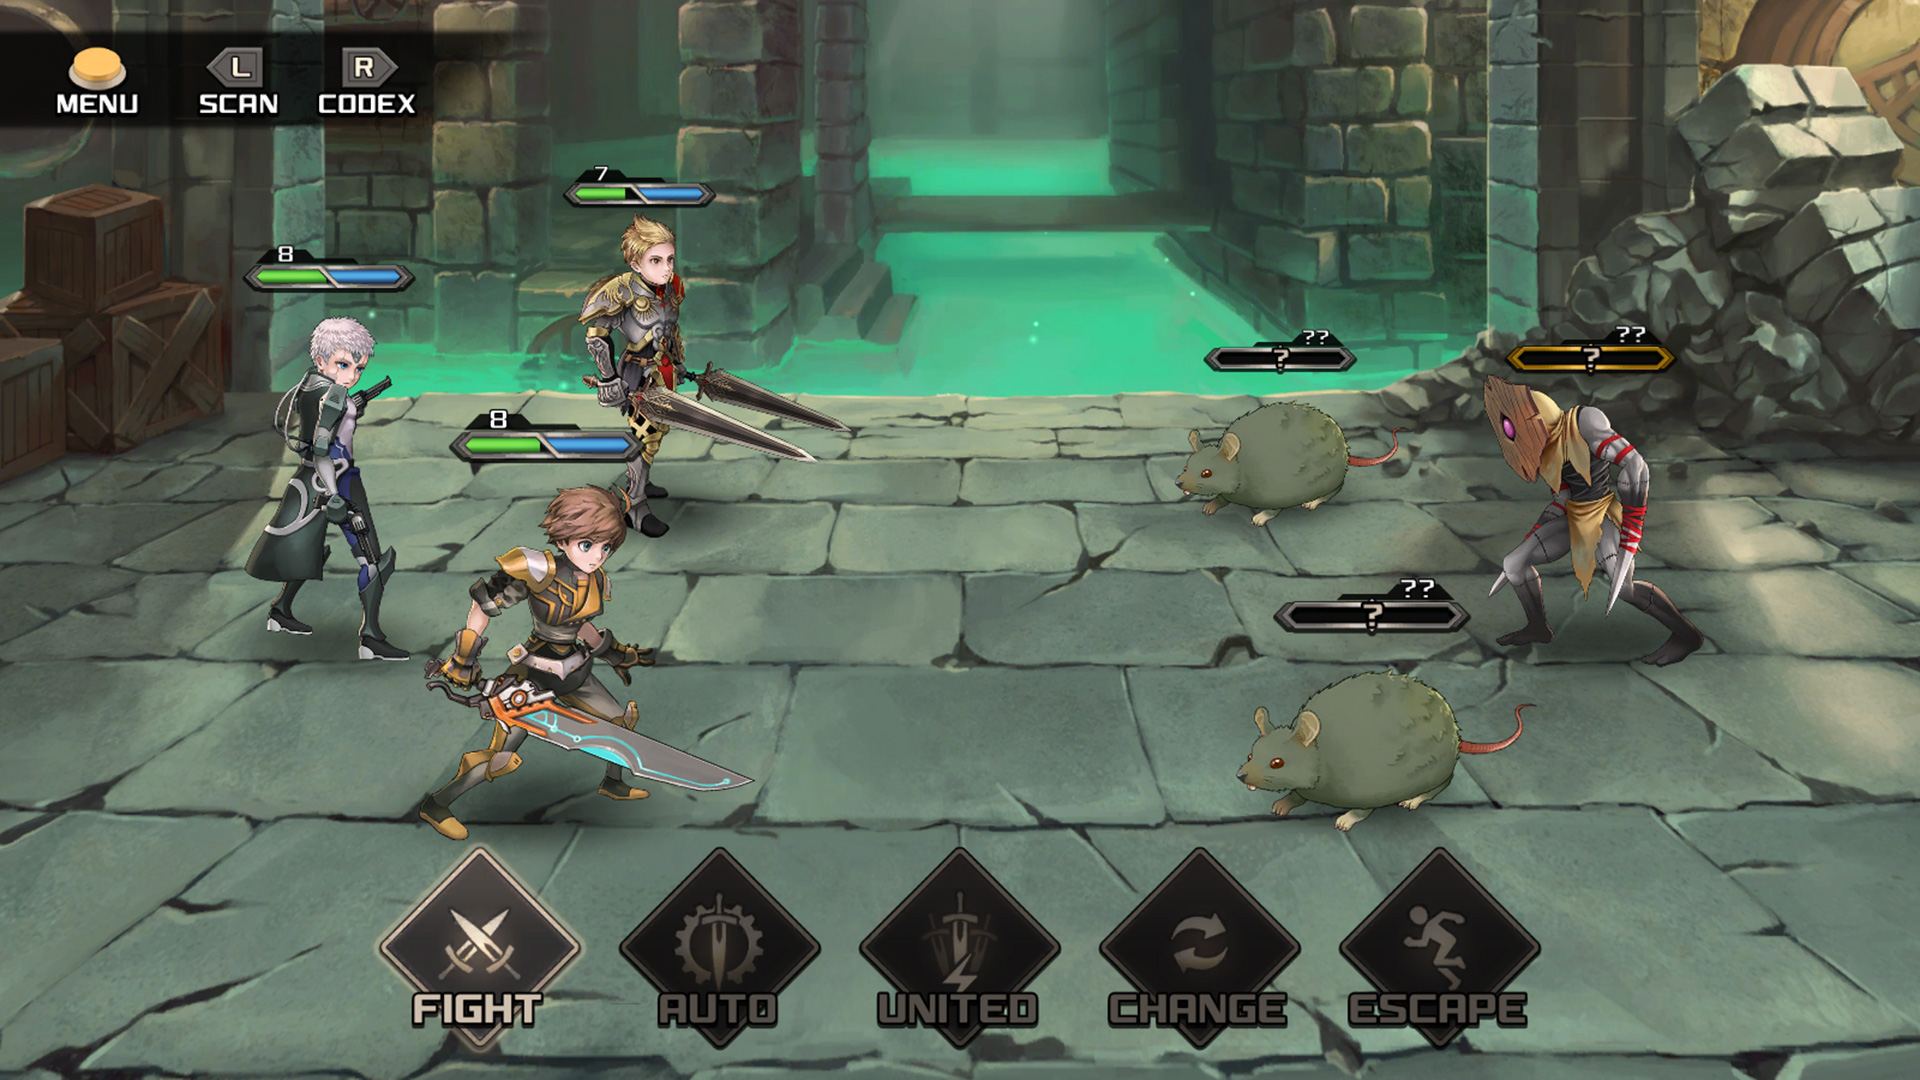 JRPG Azure Saga: Pathfinder is out now on Steam